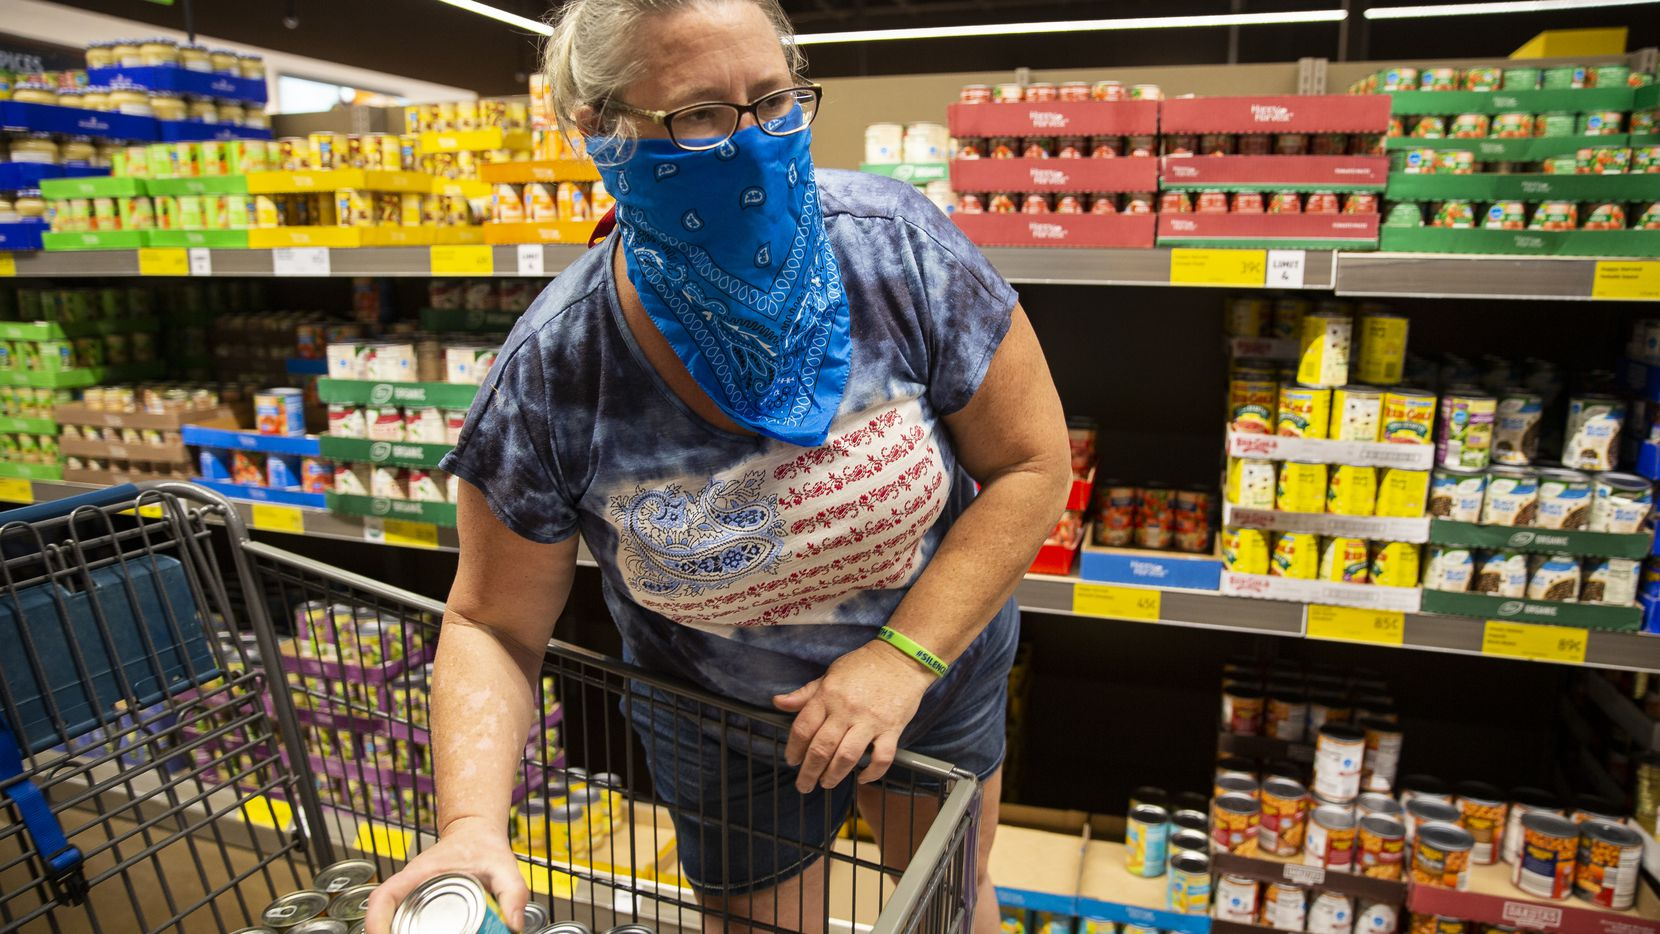 A woman shops for donations she plans to give to North Texas Food Bank at Aldi on Saturday, June 6, 2020, in Mesquite. Wells Fargo and Feeding America will team up to host drive-up food donations in August and September.